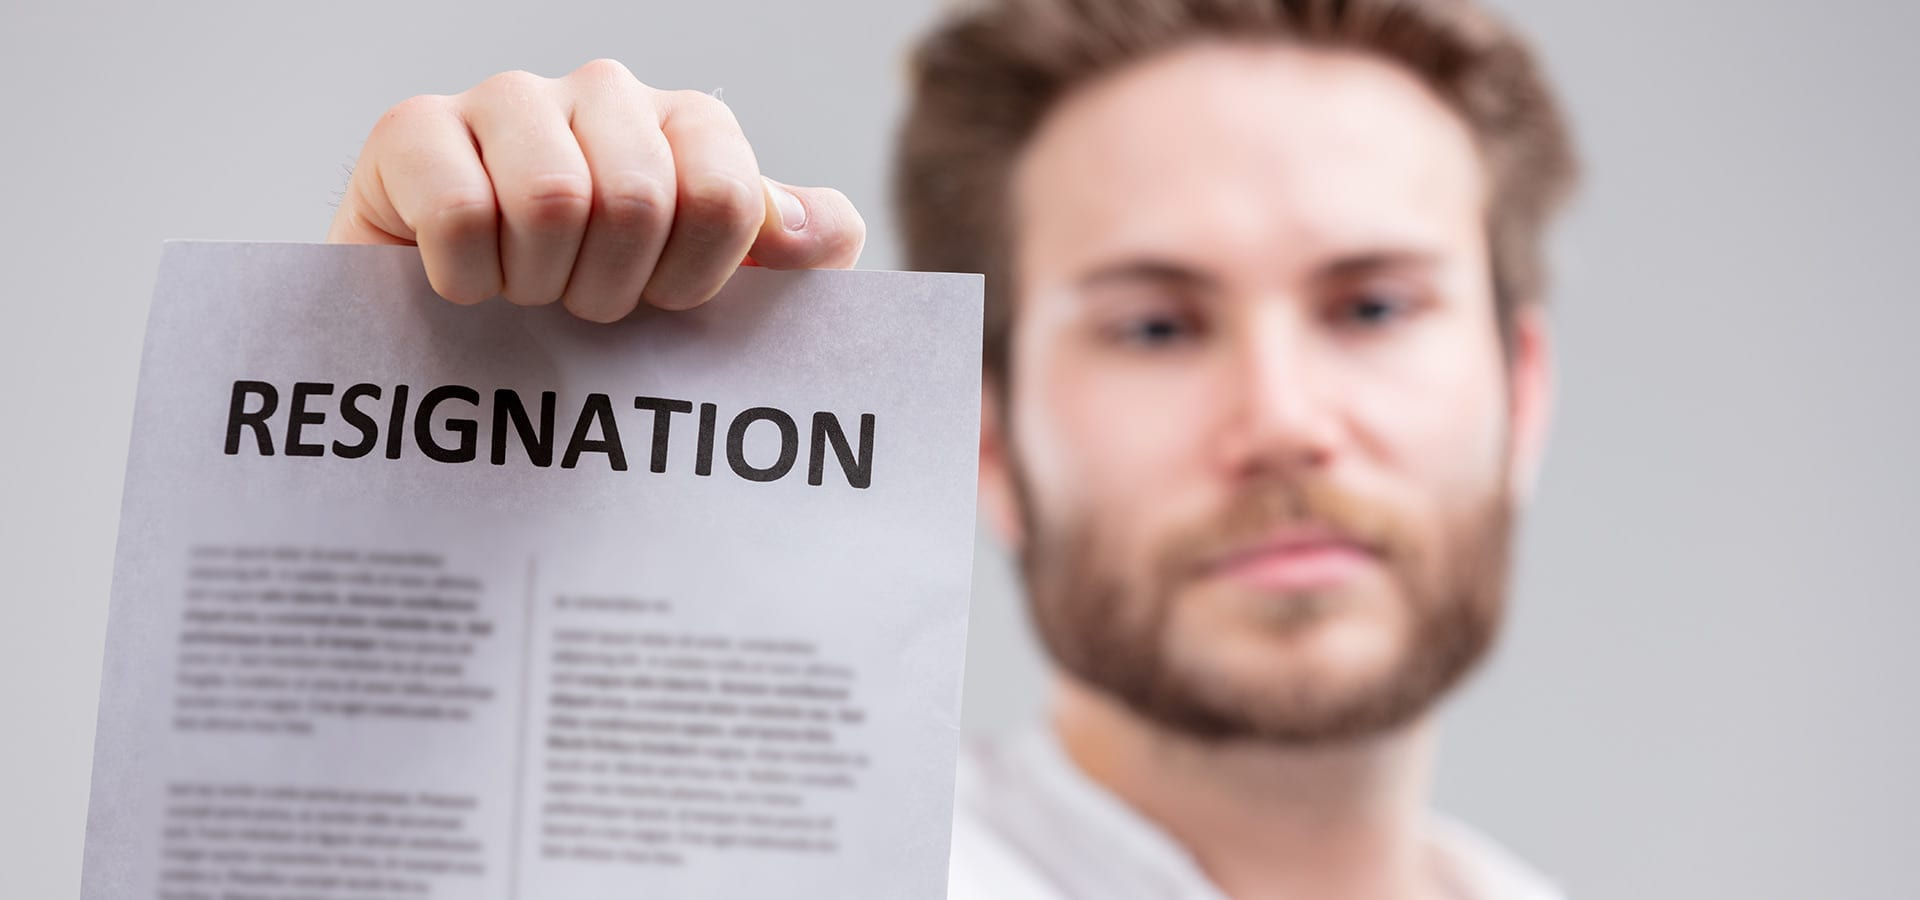 Turning in a resignation letter